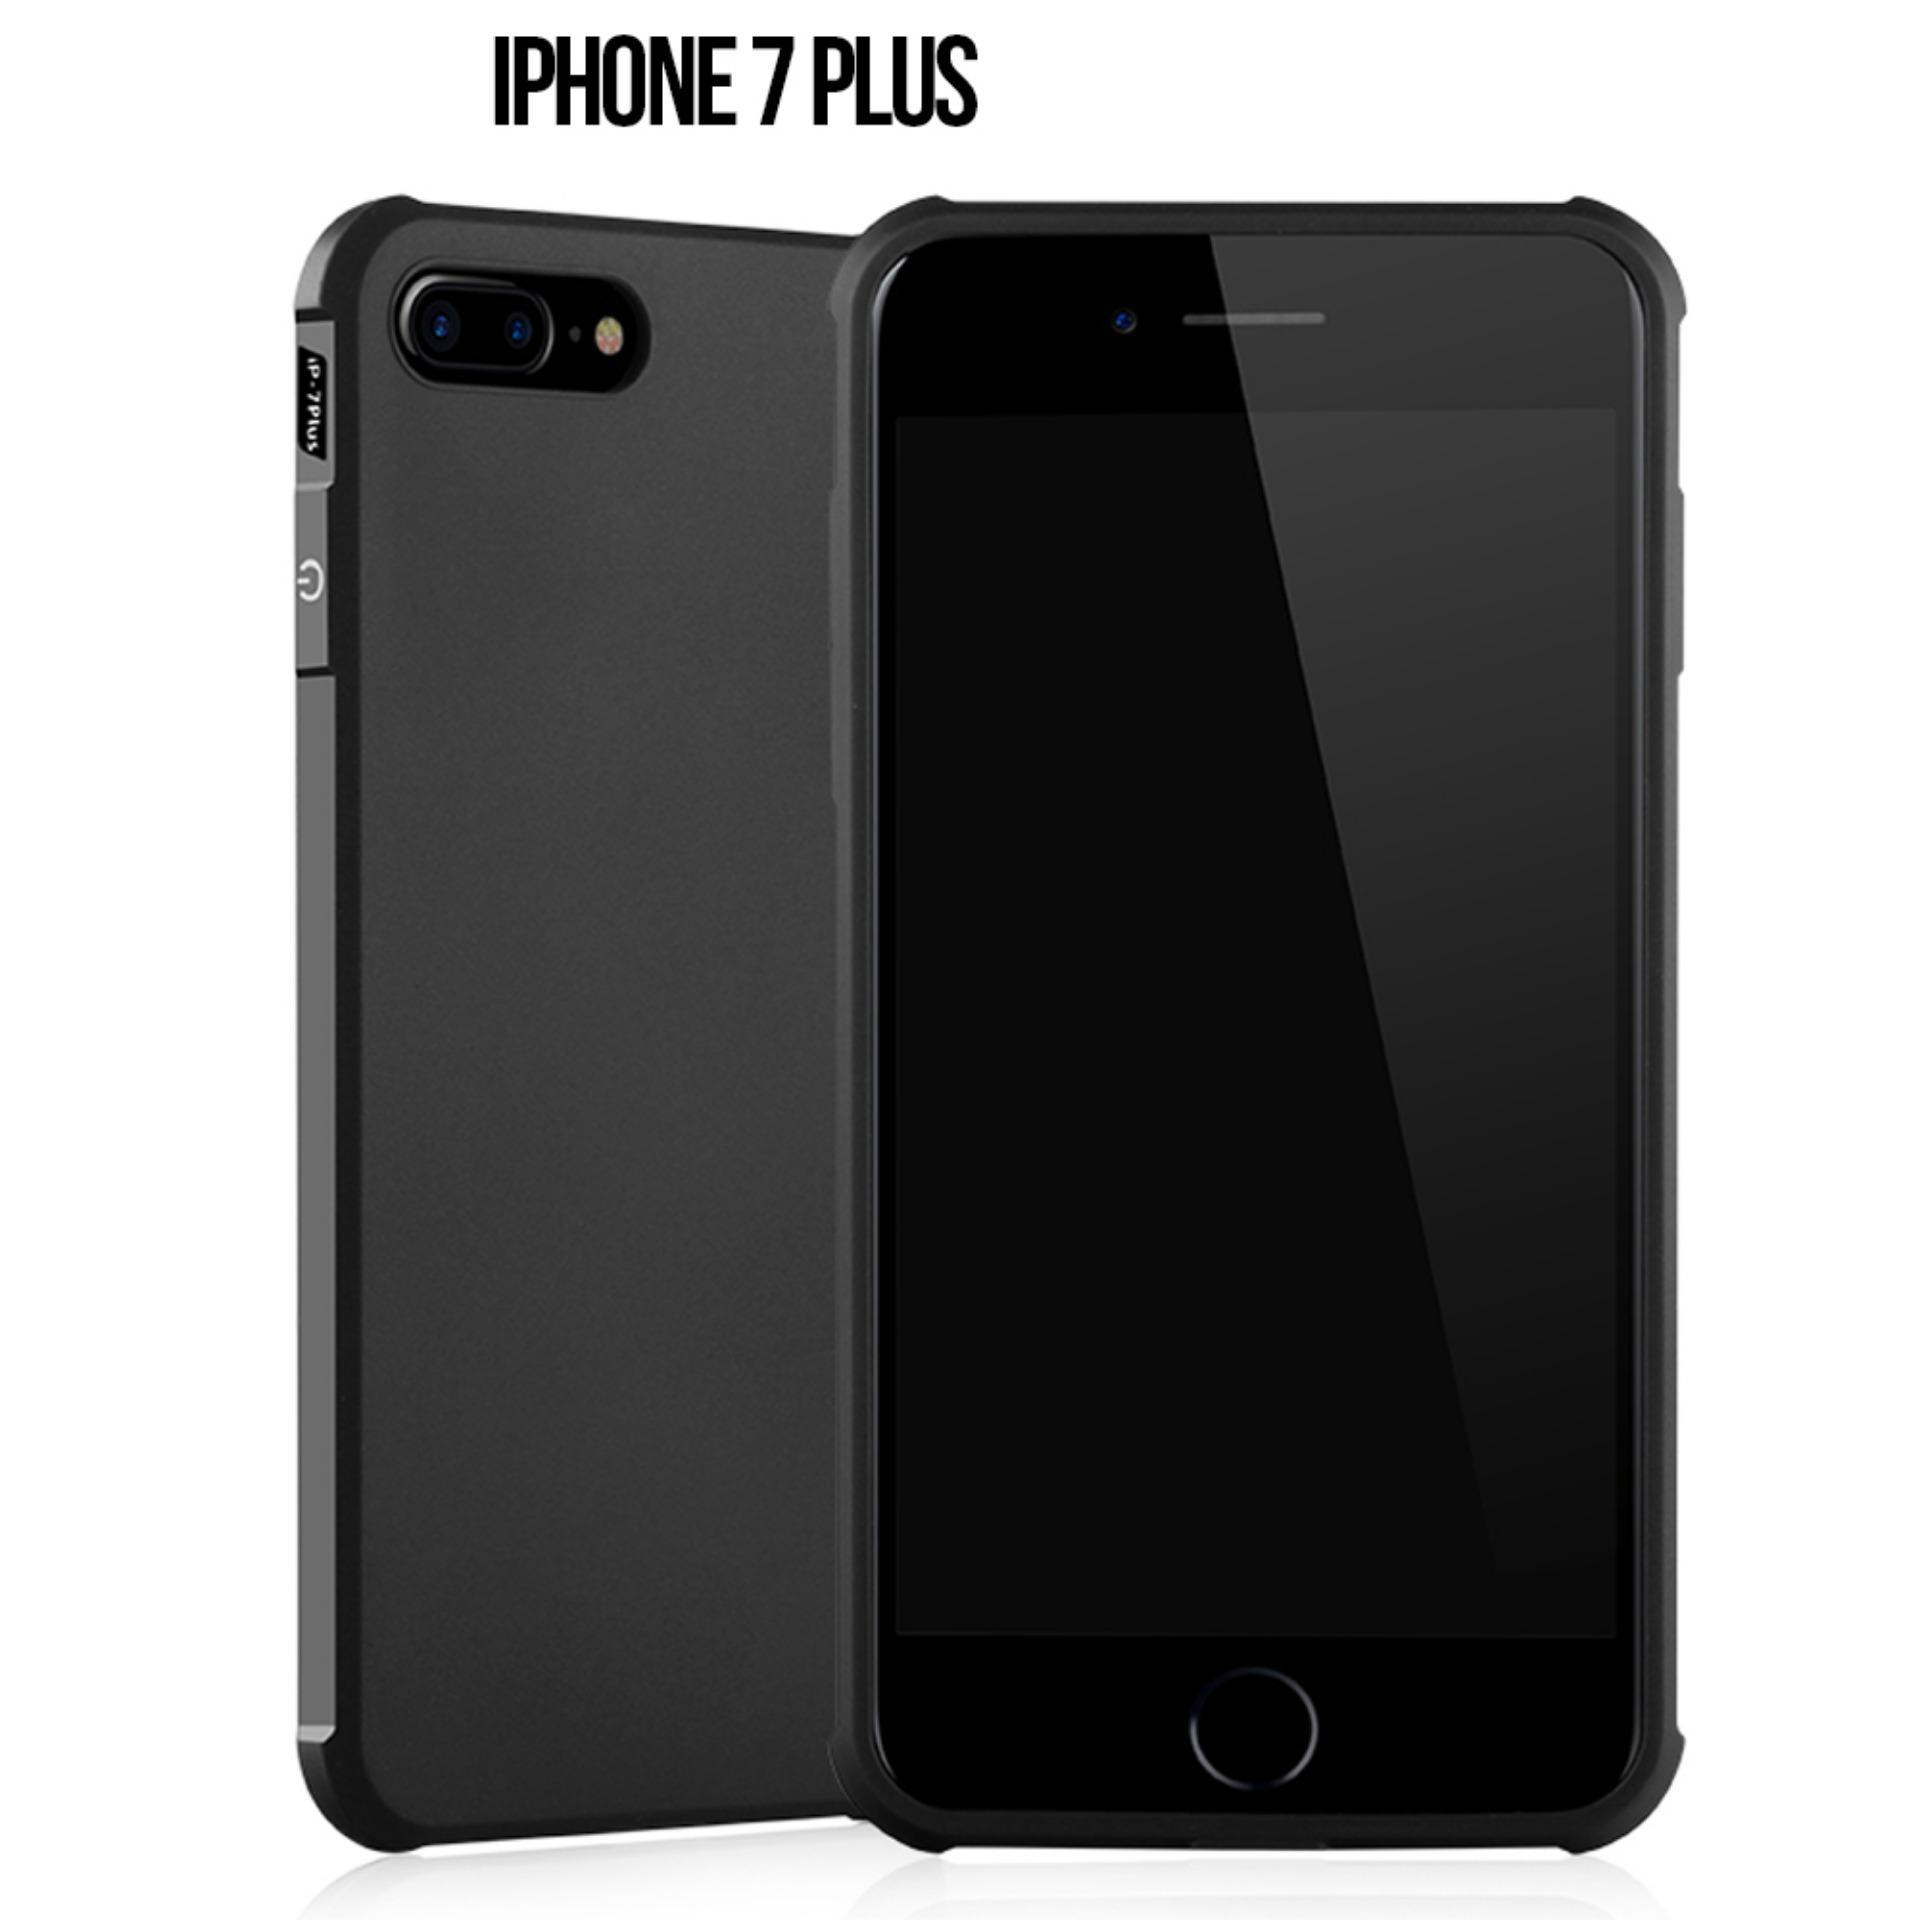 Case iphone 7 Plus COCOSE Drop resistance anti Shock Silicone Case Cover - Hitam